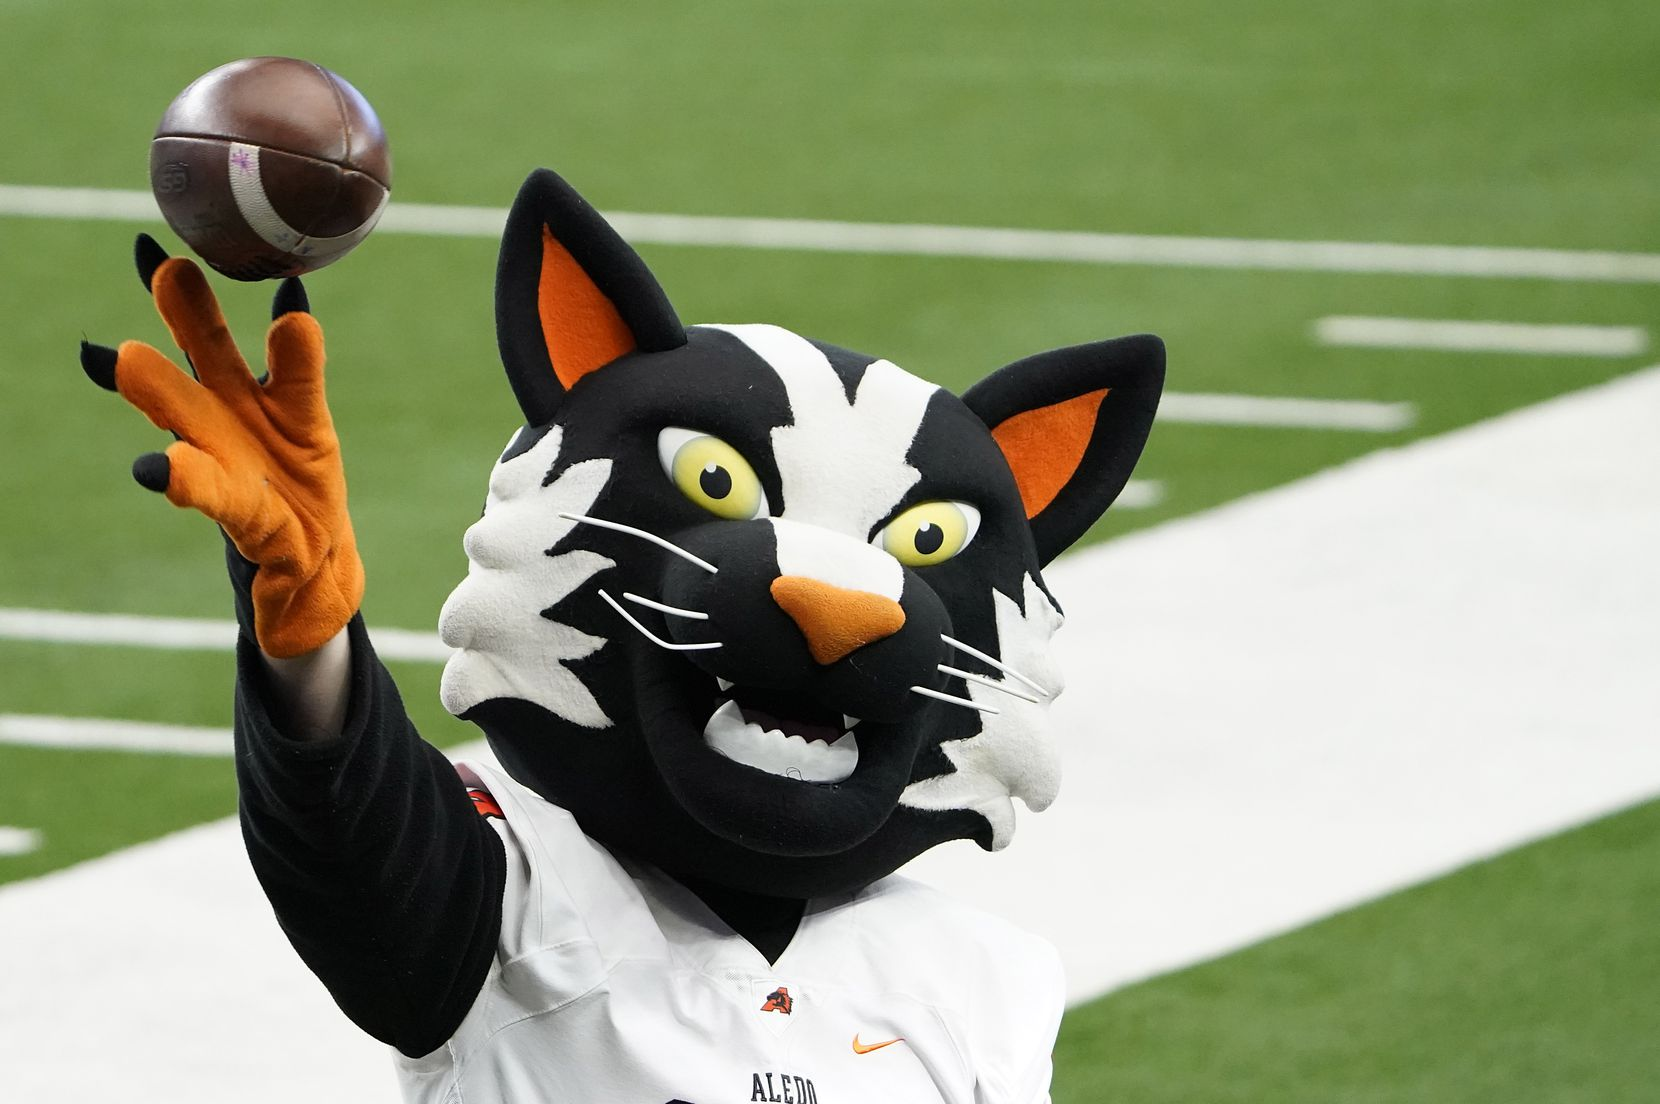 The Aledo mascot tosses a ball on the sidelines during the first half of the Class 5A Division II state football championship game against Crosby at AT&T Stadium on Friday, Jan. 15, 2021, in Arlington. (Smiley N. Pool/The Dallas Morning News)